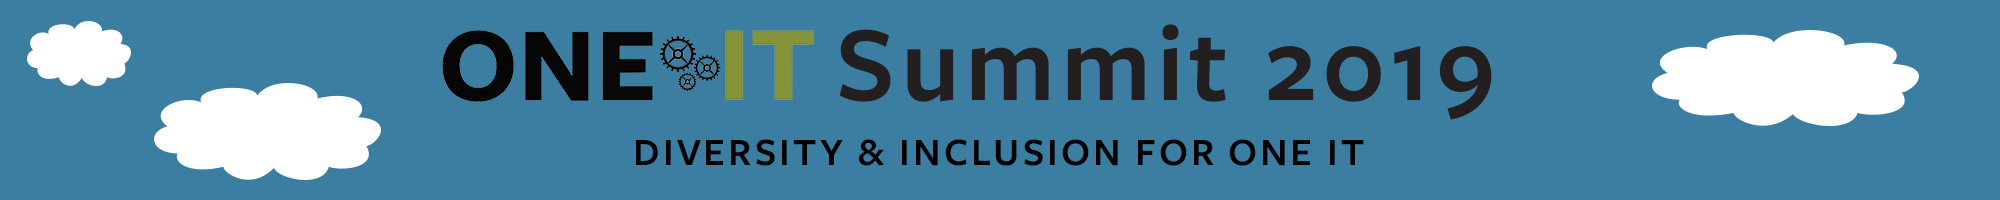 Diversity & Inclusion for One IT